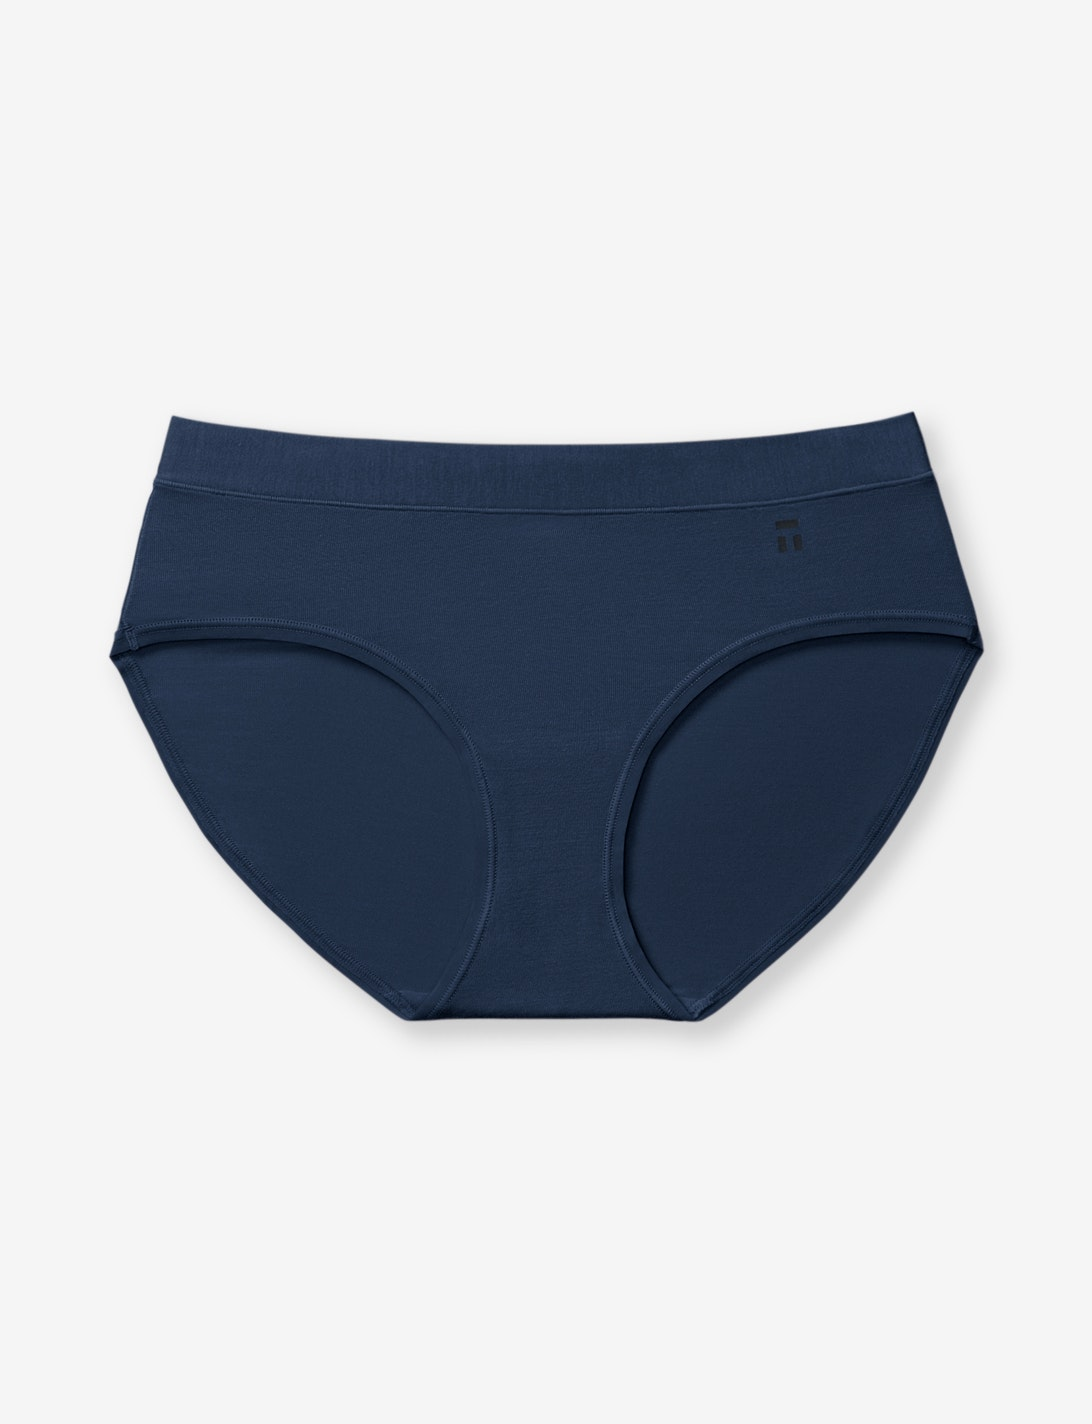 Tommy John Women's Brief